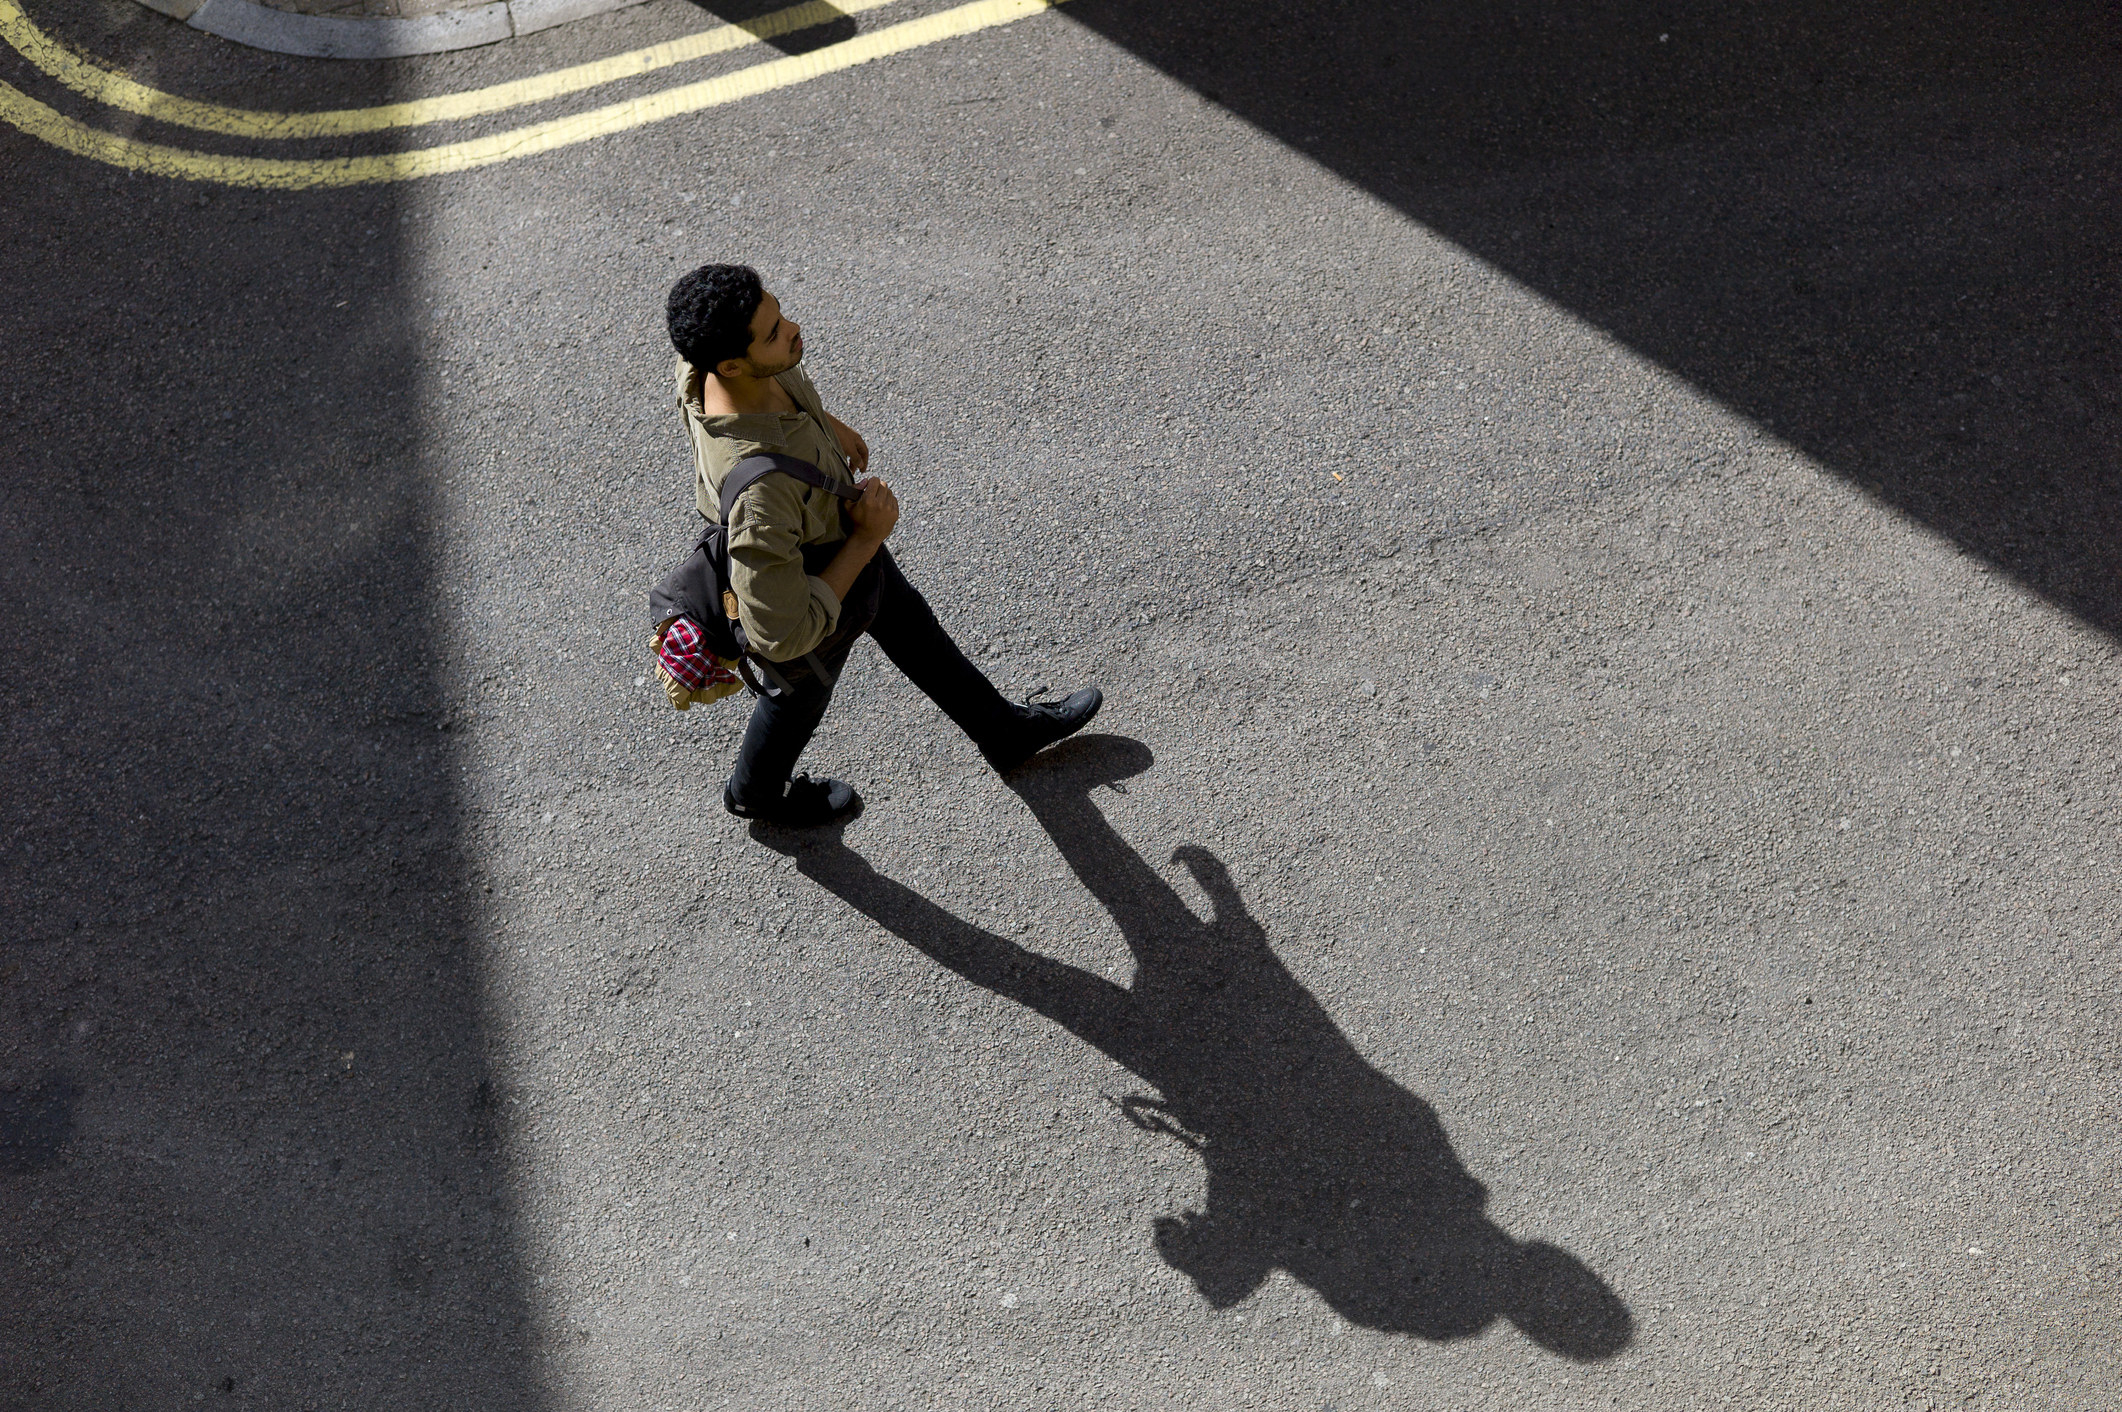 A man walking across the street and his shadow on the pavement